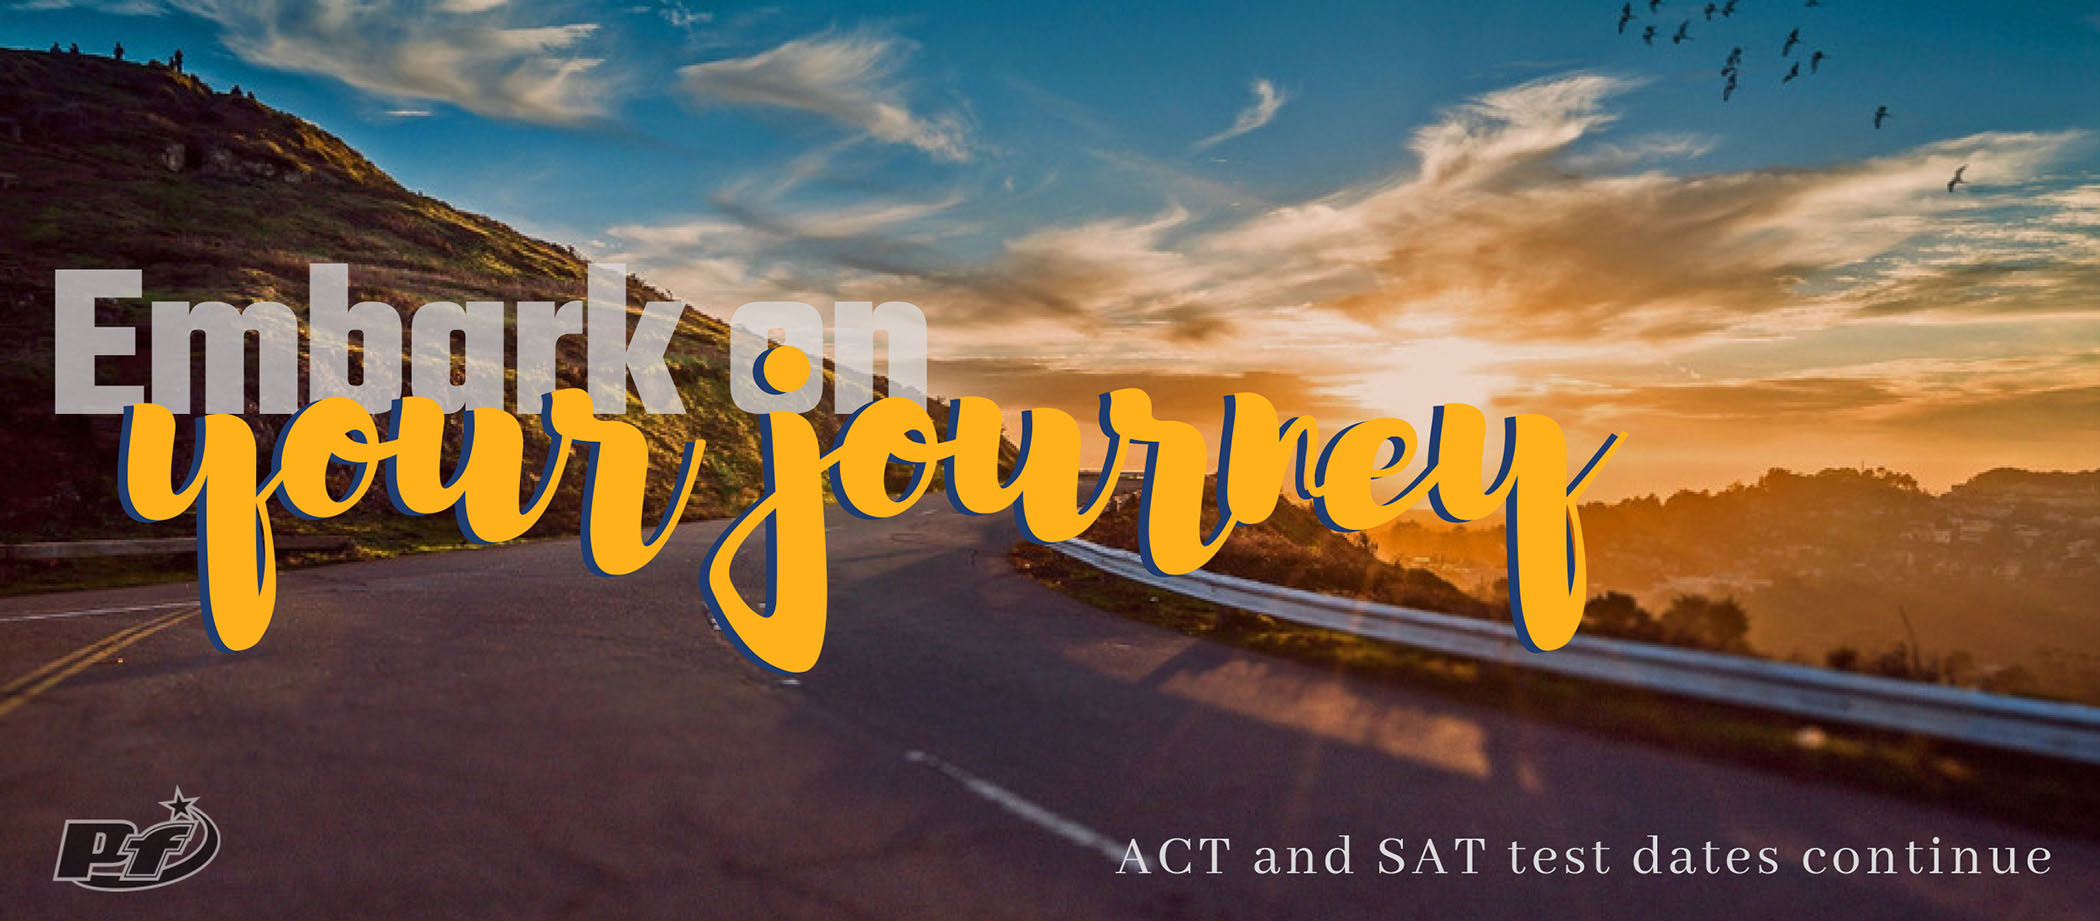 ACT, SAT test dates